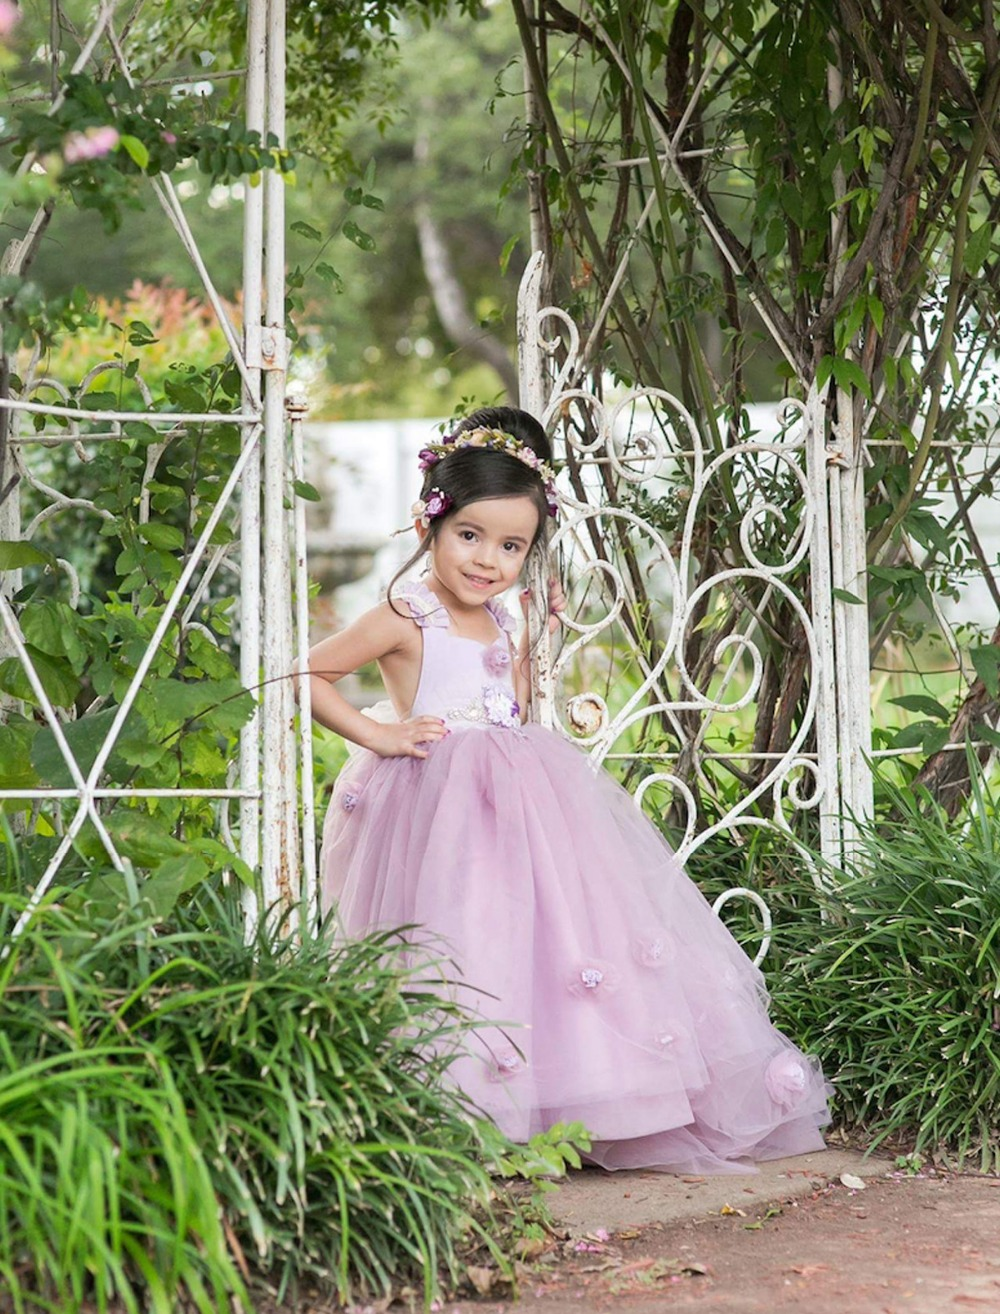 Adorable Purple Lace Tulle Baby Flower Girl Dress Sleeveless Long Floor Puffy Ball Gown with Handemade Flowers 0-12 Years Old